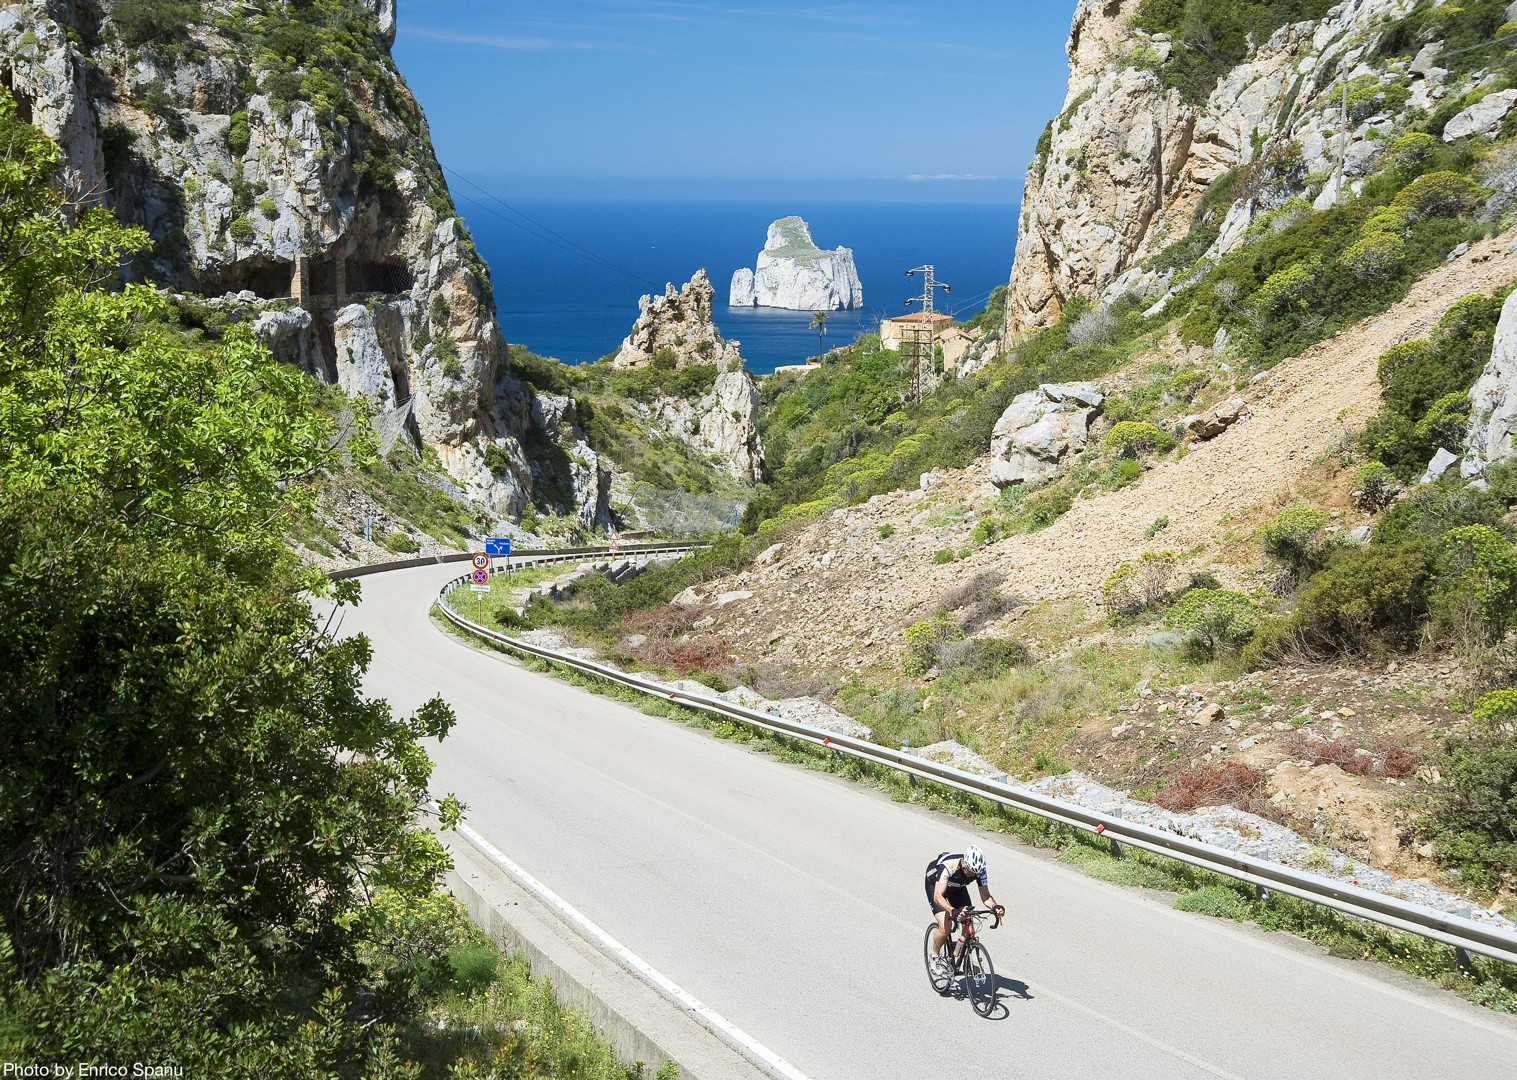 Road-Cycling-Holiday-Italy-Sardinia-Coastal-Explorer-Capo-Caccia.jpg - Italy - Sardinia - Coastal Explorer - Road Cycling